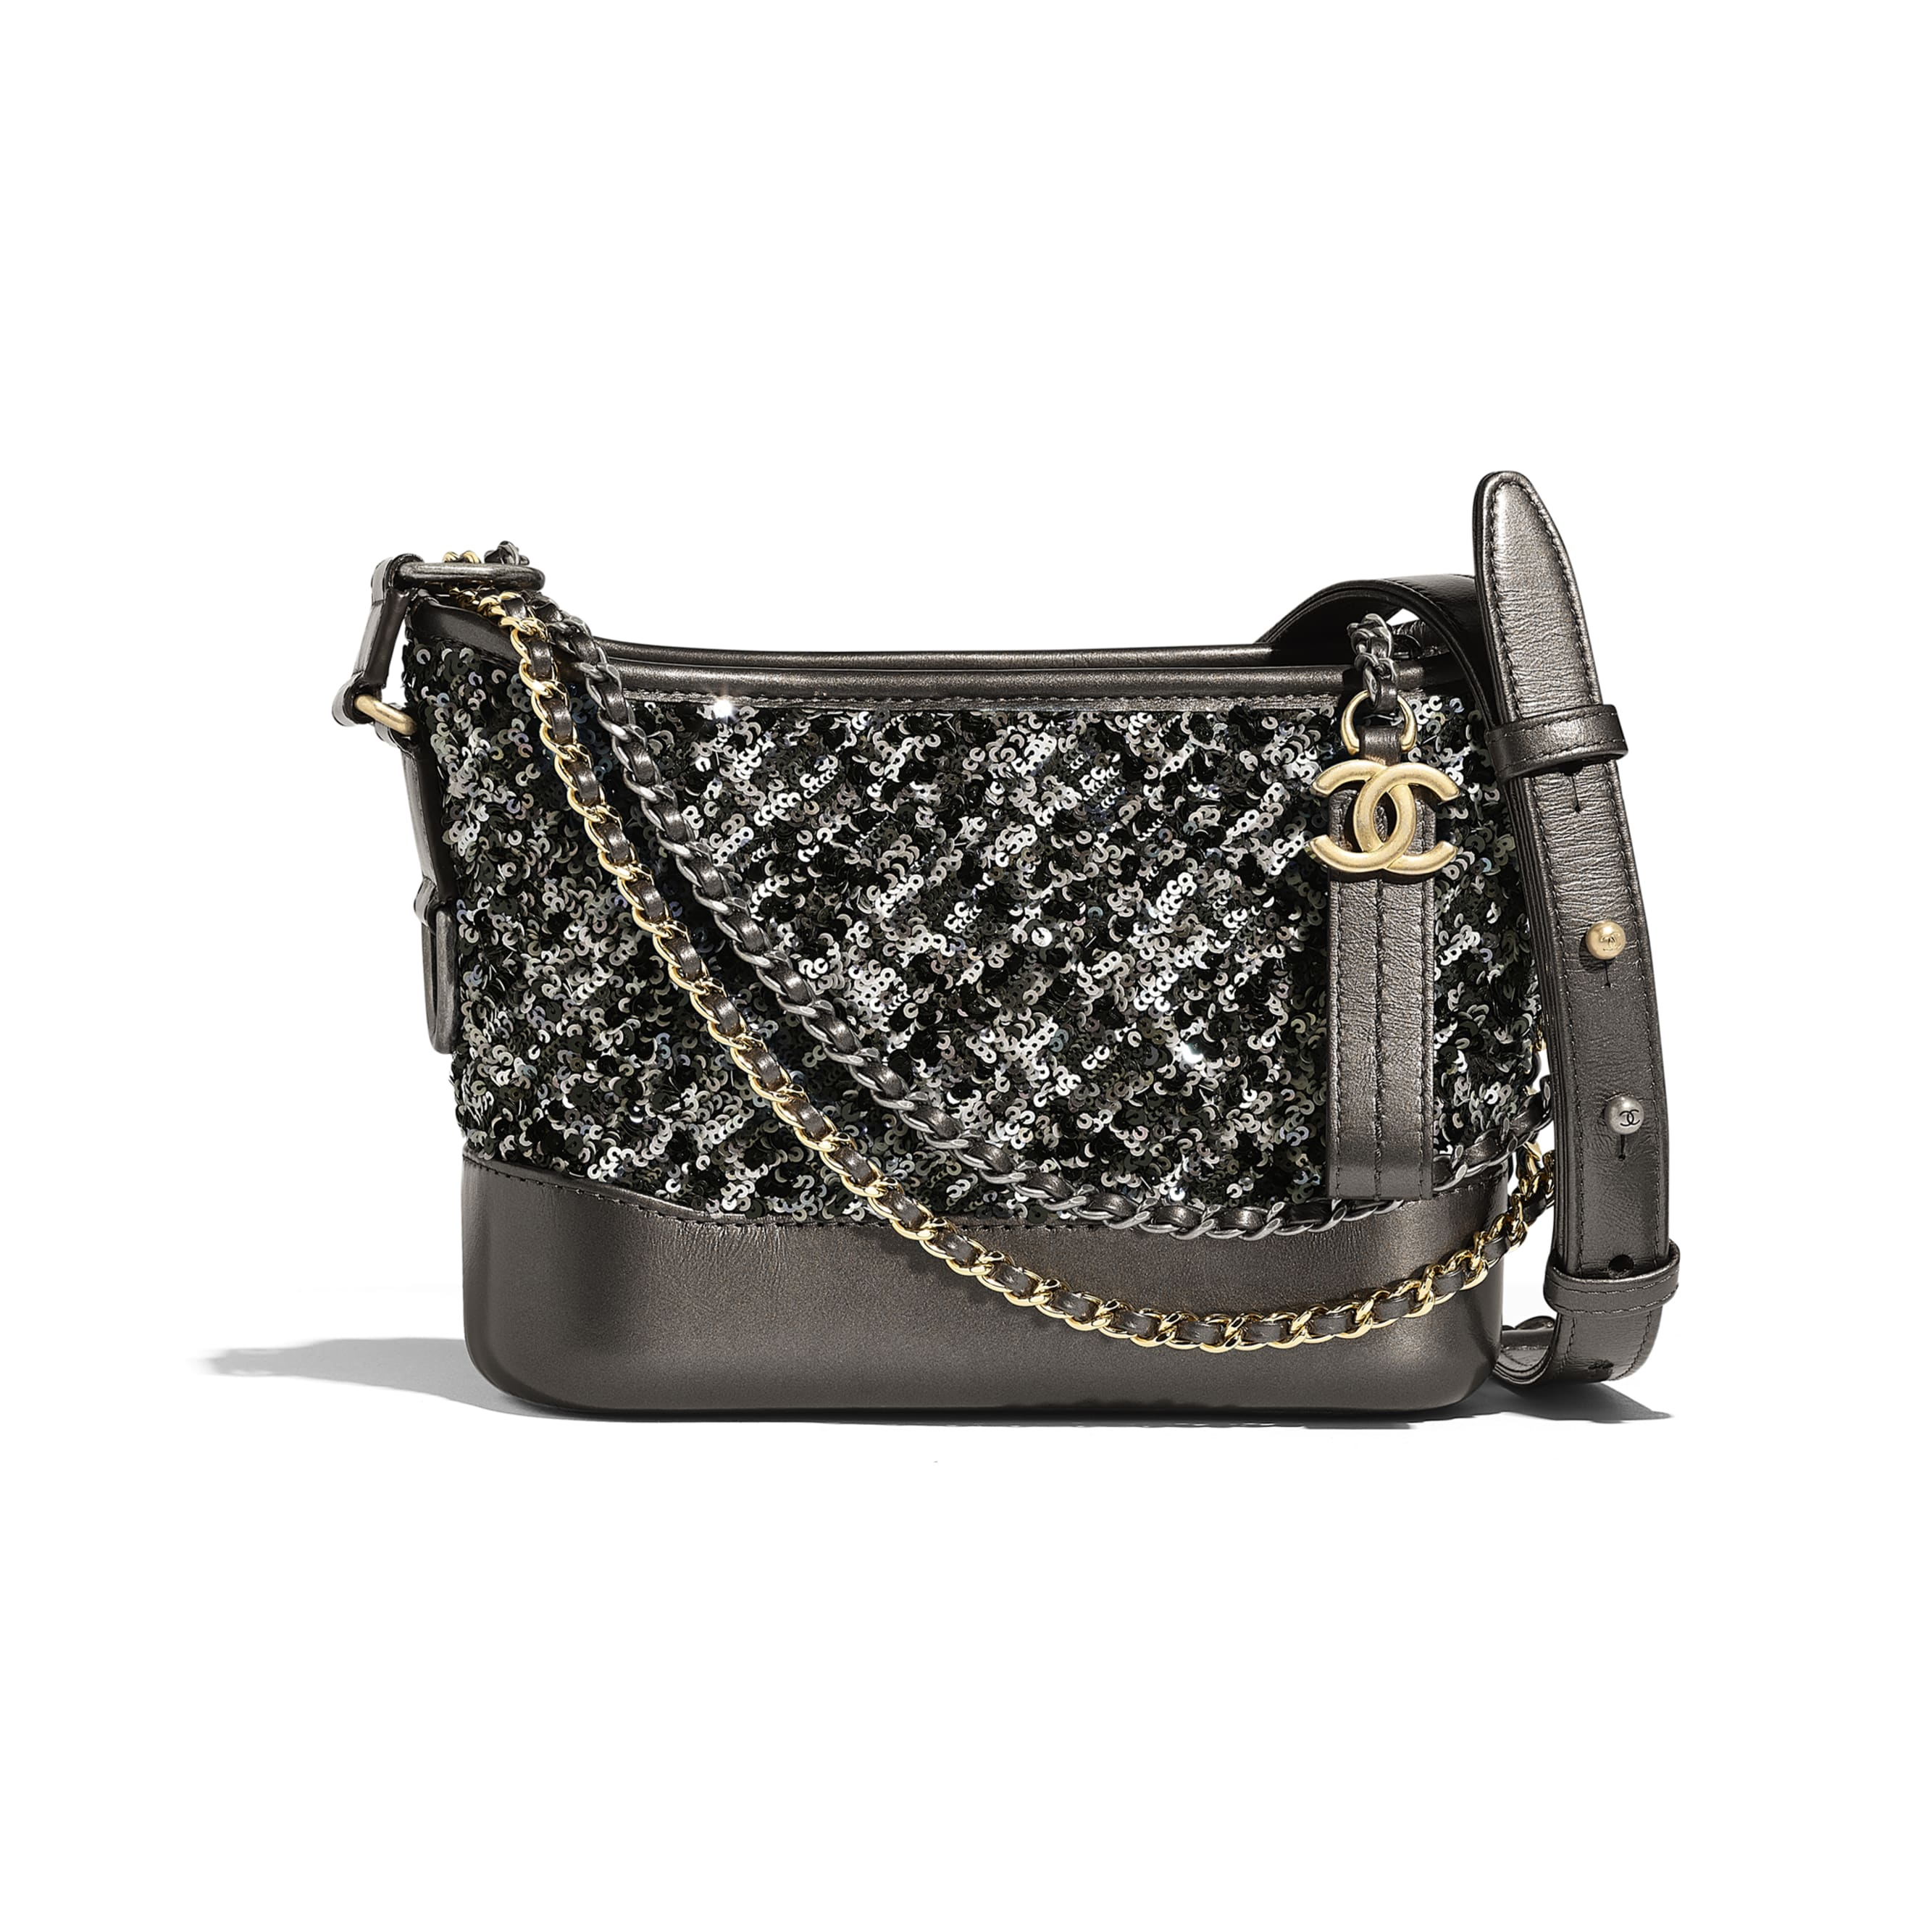 CHANEL'S GABRIELLE Small Hobo Bag - Black - Sequins, Calfksin, Silver-Tone & Gold-Tone Metal - Default view - see standard sized version